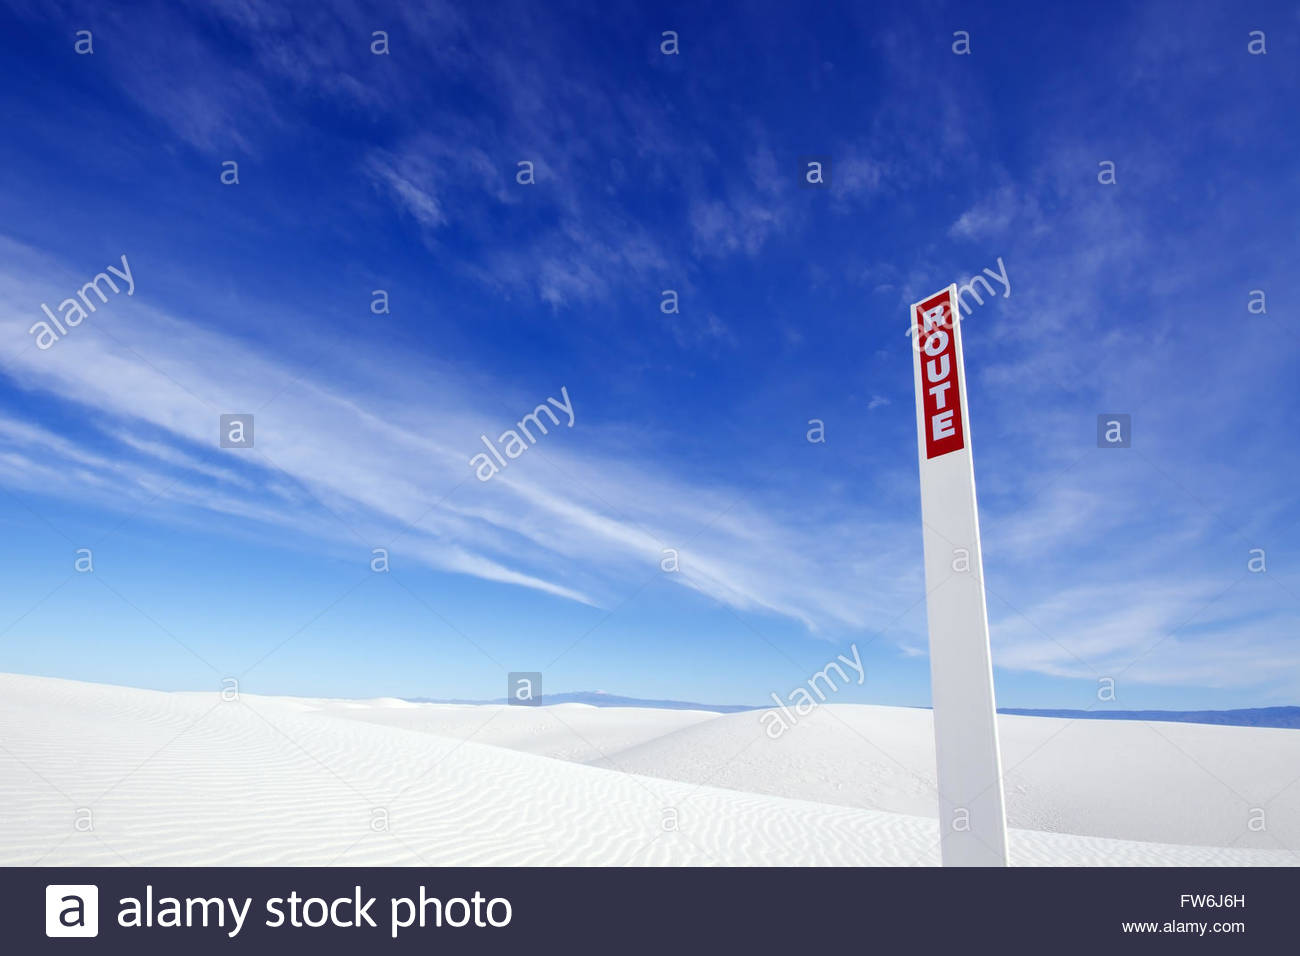 Route Sign, White Sands National Monument, New Mexico - Stock Image